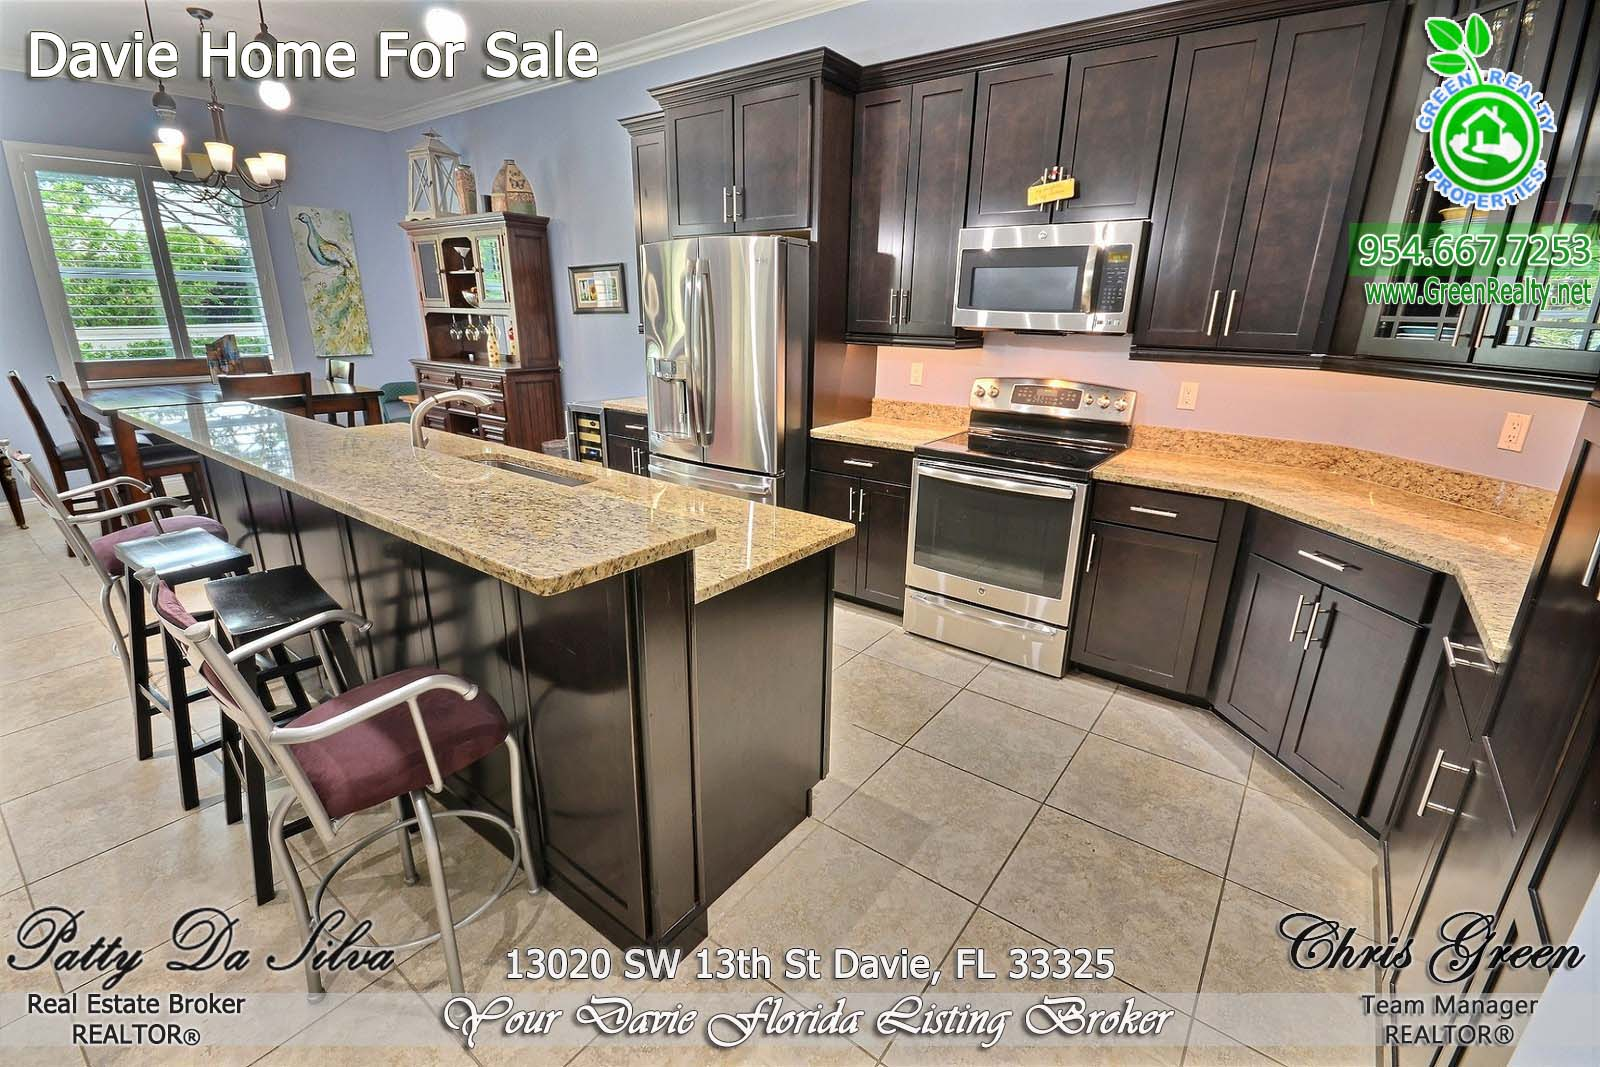 6 Homes For Sale in Davie Florida (5)